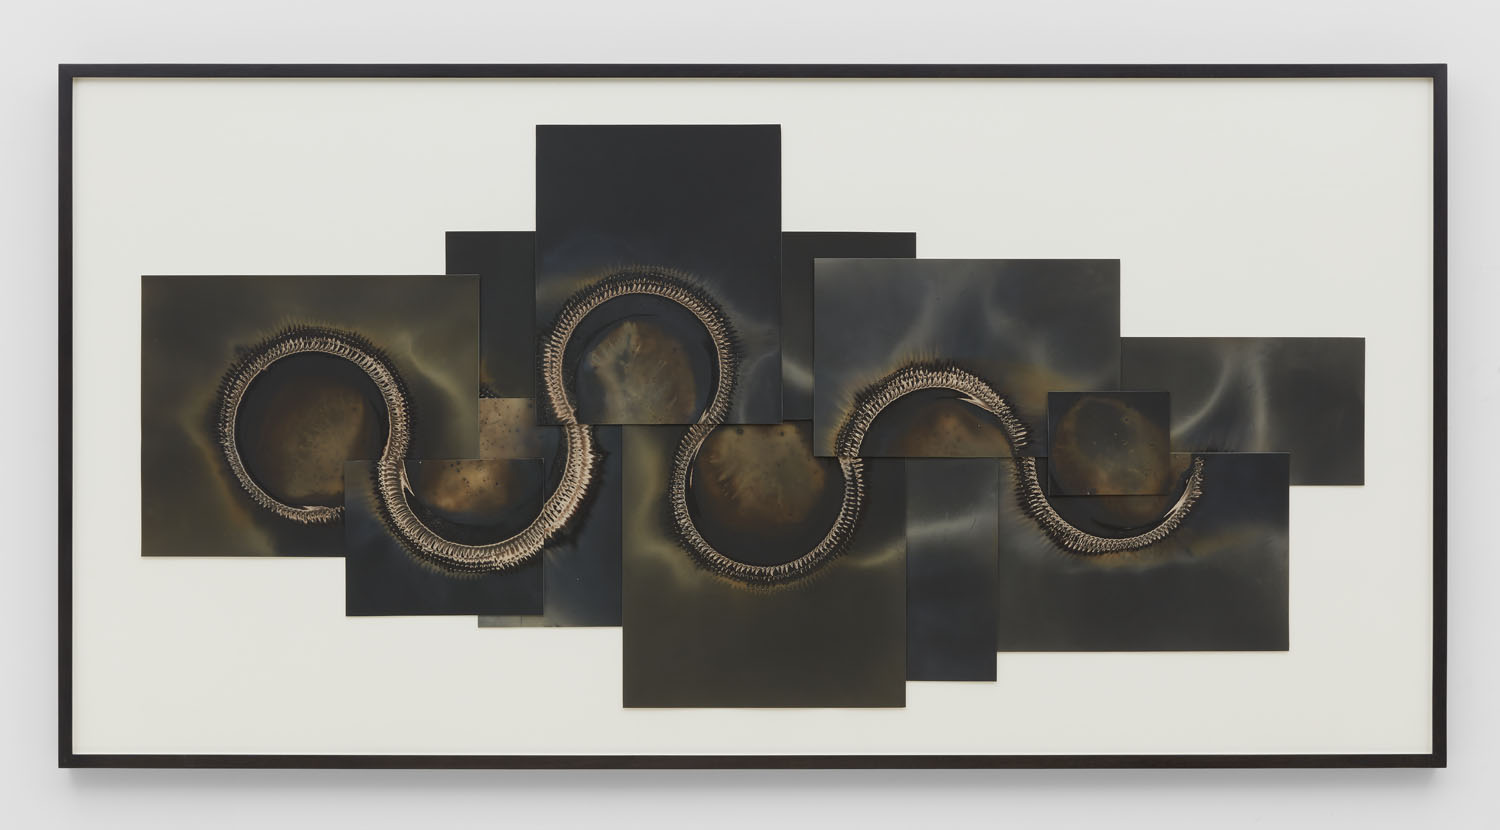 CIRCLES & SQUARES     a highly subjective survey of basic forms in painting, photographs, sculpture, video and works on paper   June 13 - August 2, 2019